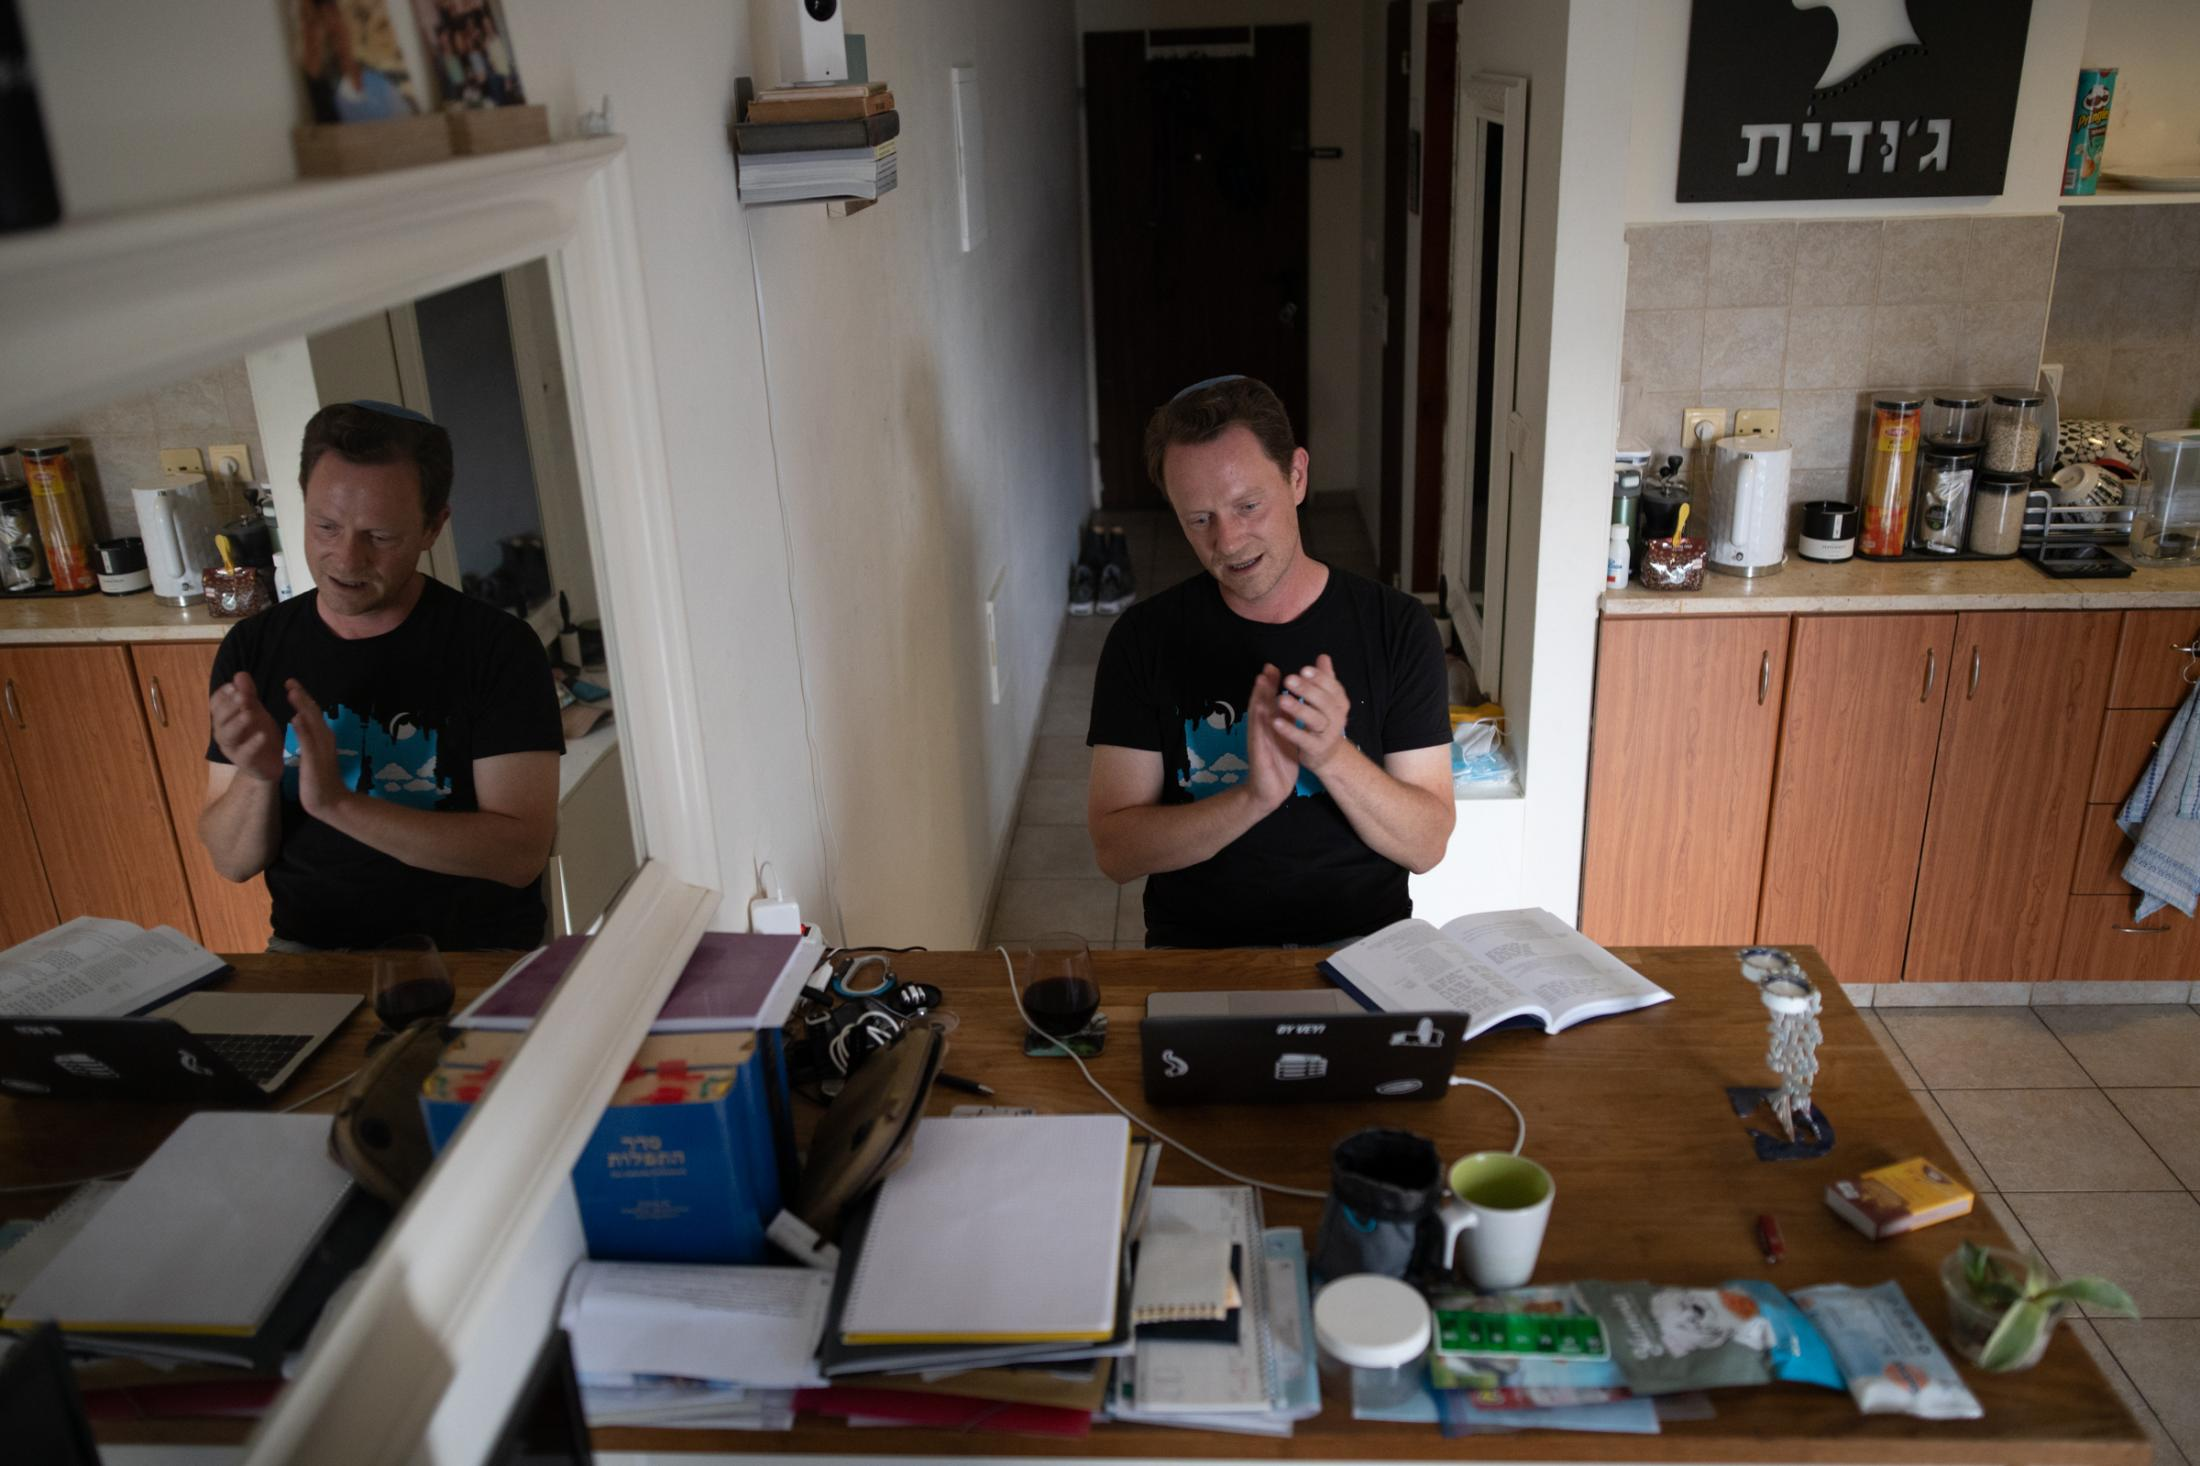 """Christian Hickmann, 43, participates in an online synagogue service in his home in Tel Aviv, Israel, April 10, 2020. """"I appreciate that we have the possibility of online communication. Ten or 15 years ago it would not have been possible in this scope and people would have been much more isolated. It helps to preserve the backdrop of normality. For online services, just hearing the familiar melodies helps pretending that everything continues normally. In the end, it is Potemkin villages, but it helps. However, it is not a long-term solution. Judaism lives from physical encounters and community, which is specifically challenging to recreate virtually."""""""